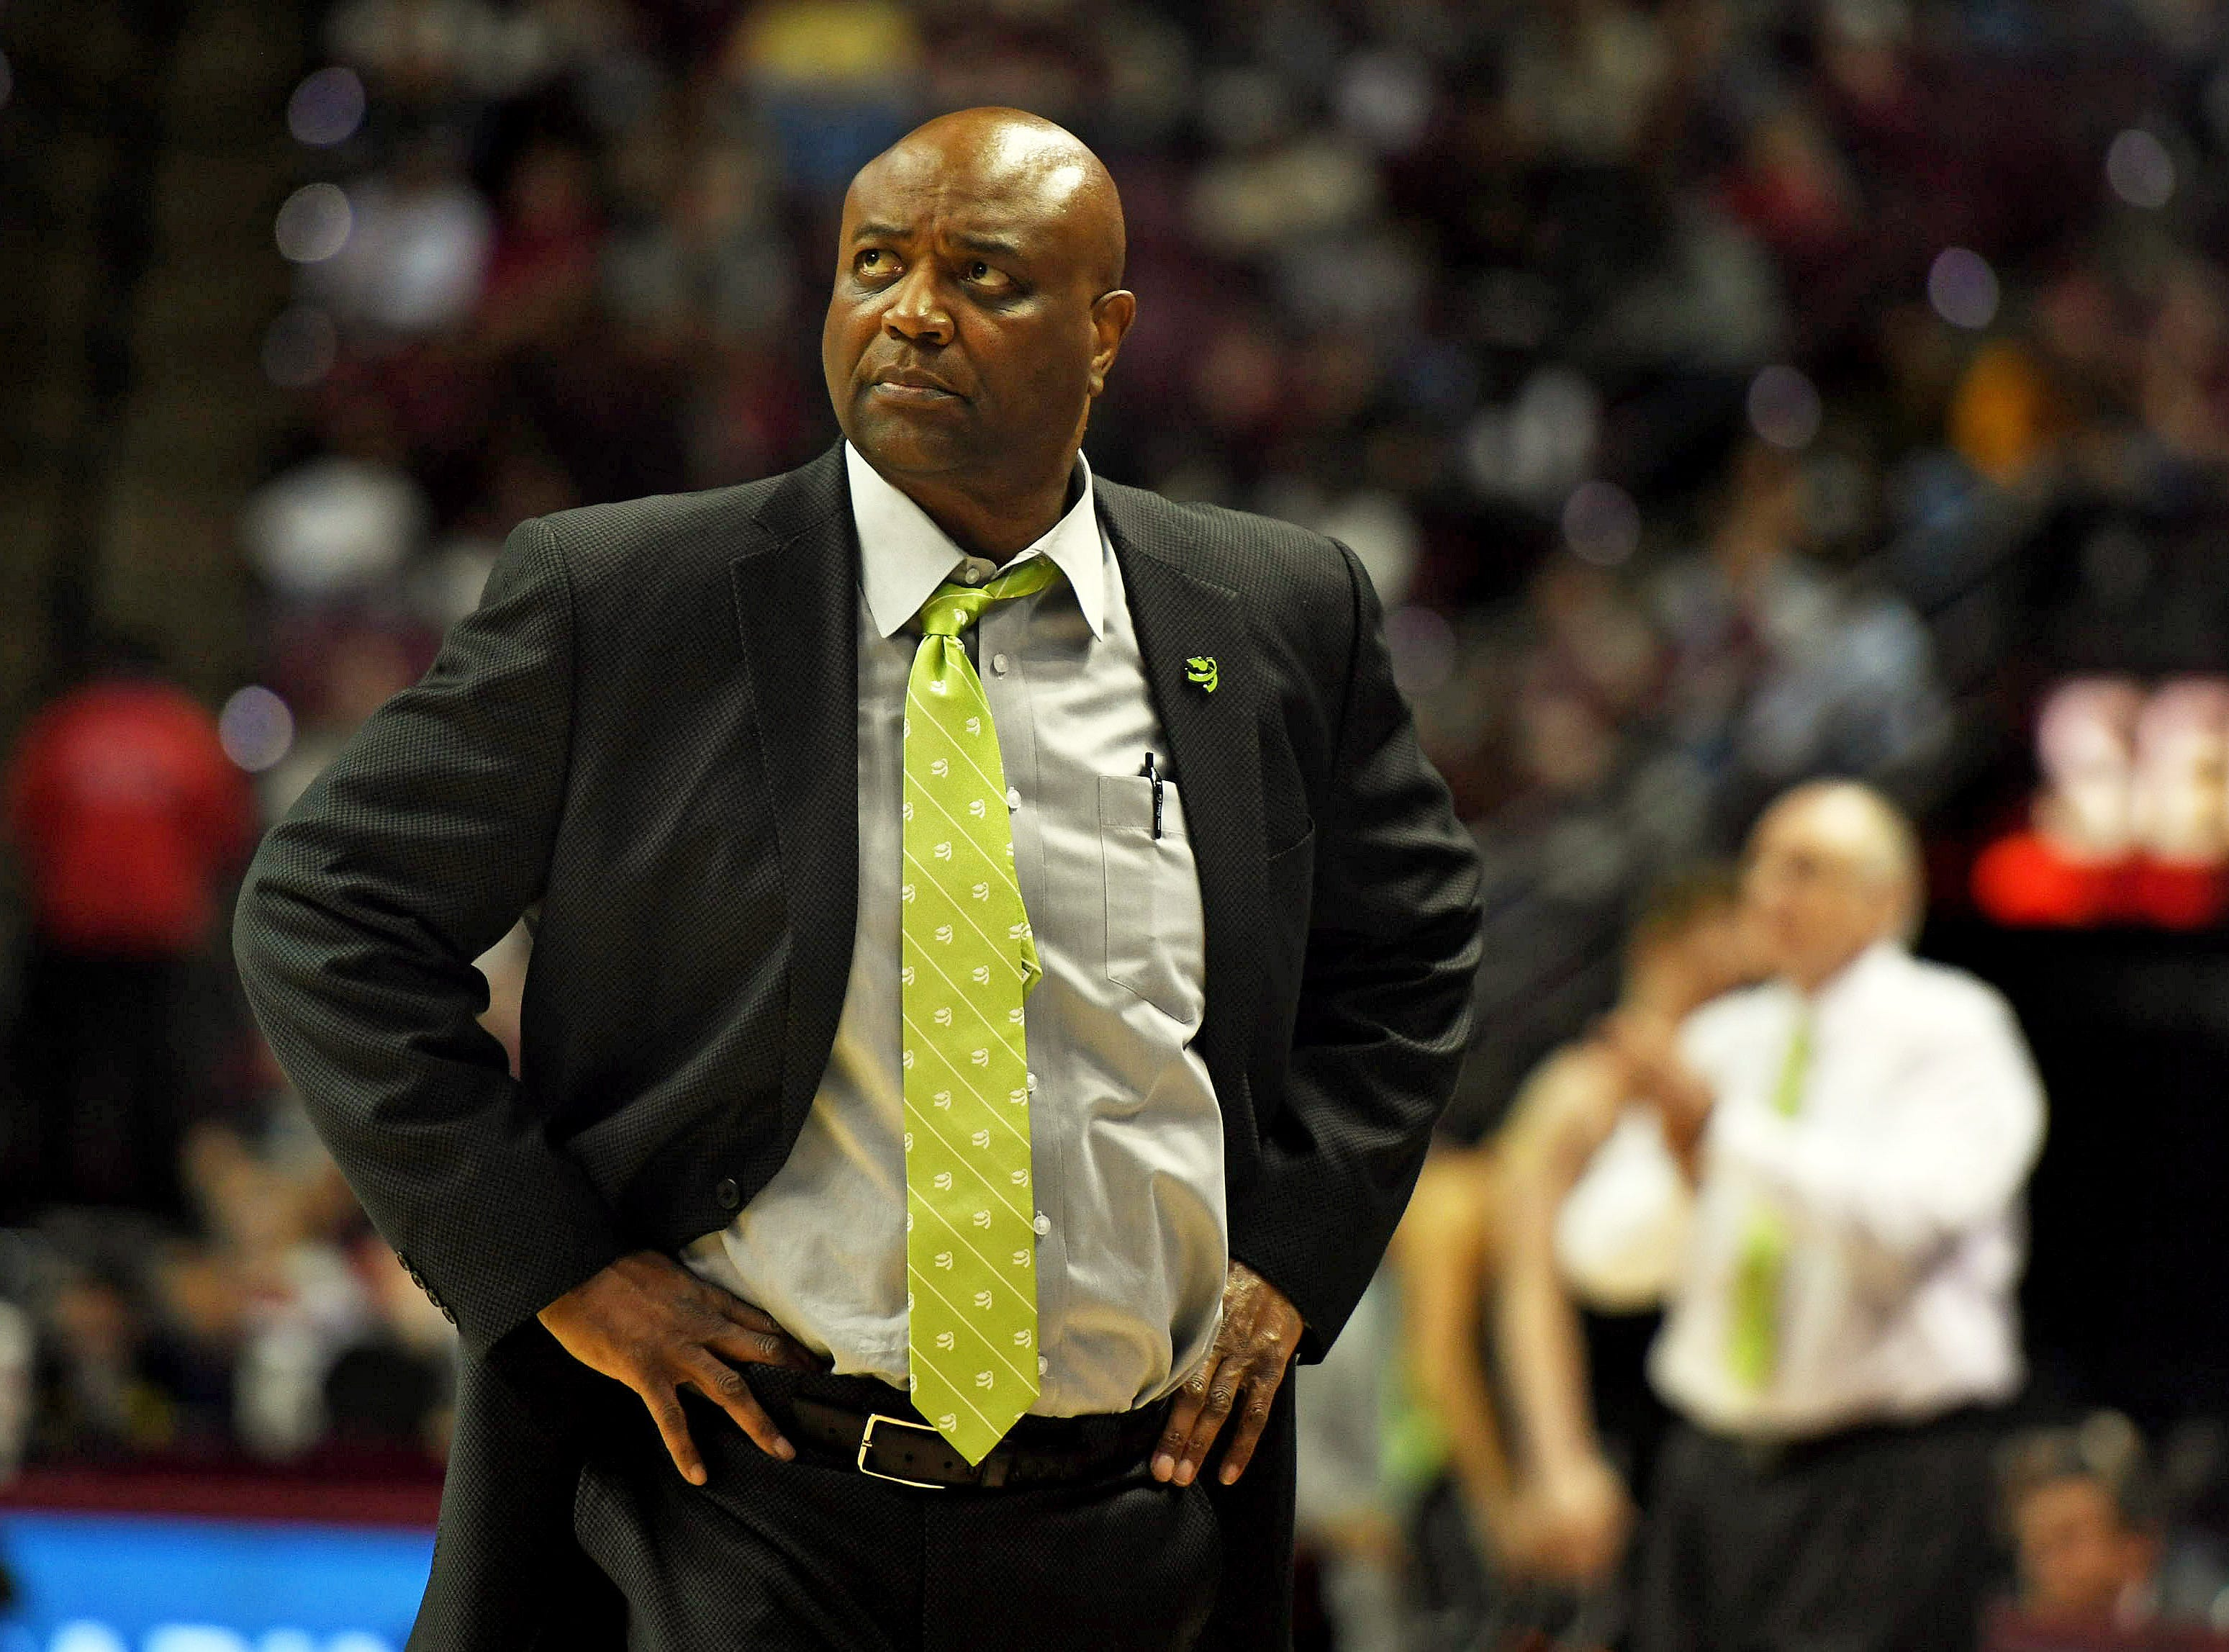 Jan 9, 2019; Tallahassee, FL, USA; Florida State Seminoles head coach Leonard Hamilton looks on during the second half against the Miami Hurricanes  at Donald L. Tucker Center. Mandatory Credit: Melina Myers-USA TODAY Sports